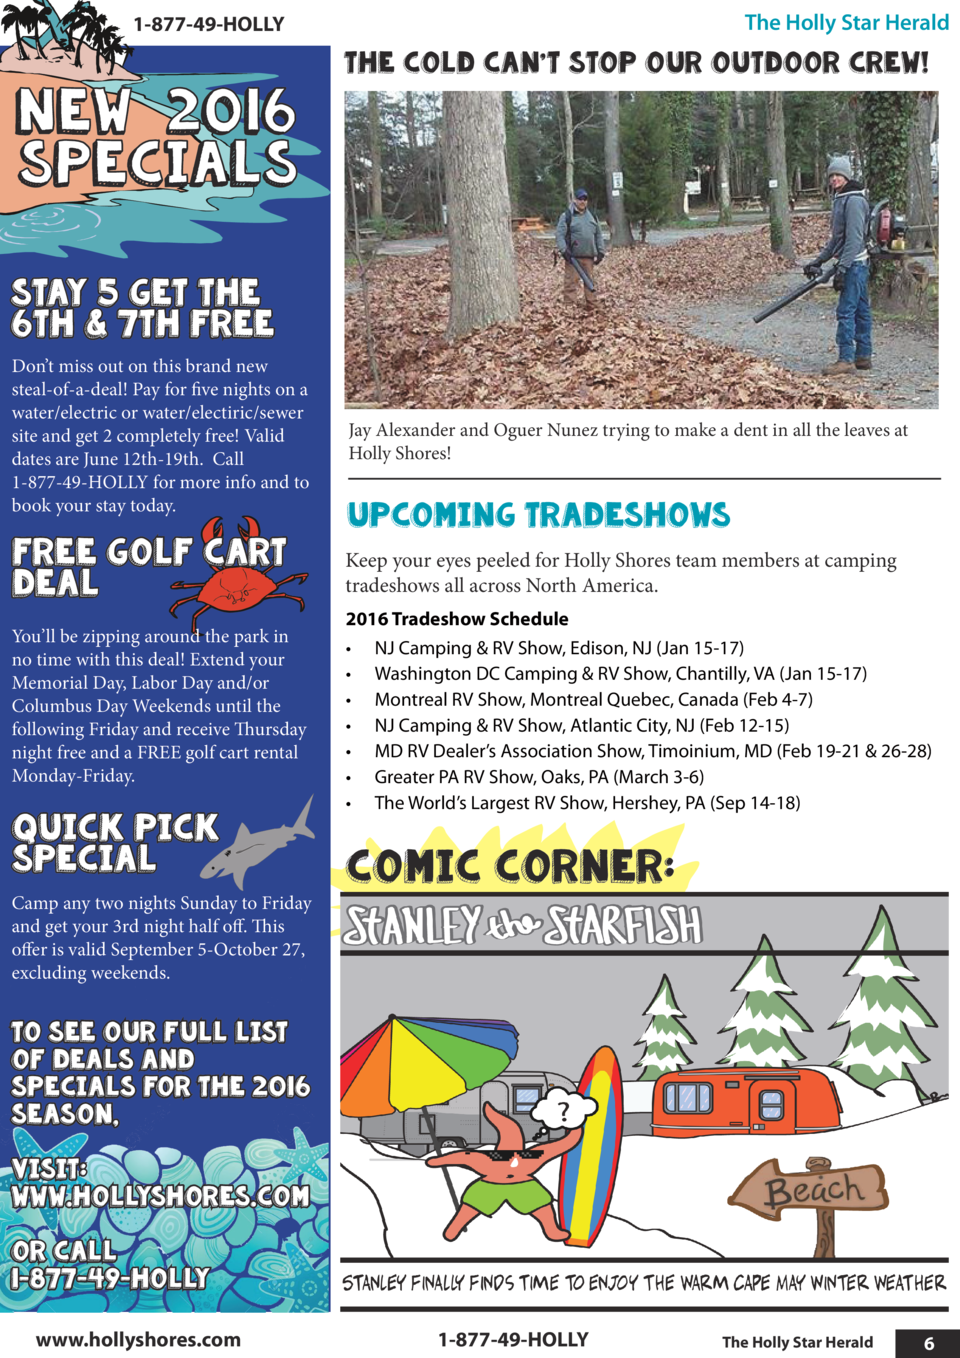 The Holly Star Herald  1-877-49-HOLLY  NEW 2016 SPECIALS  The Cold Can   t Stop Our Outdoor Crew   Stay 5 Get the 6th   7t...